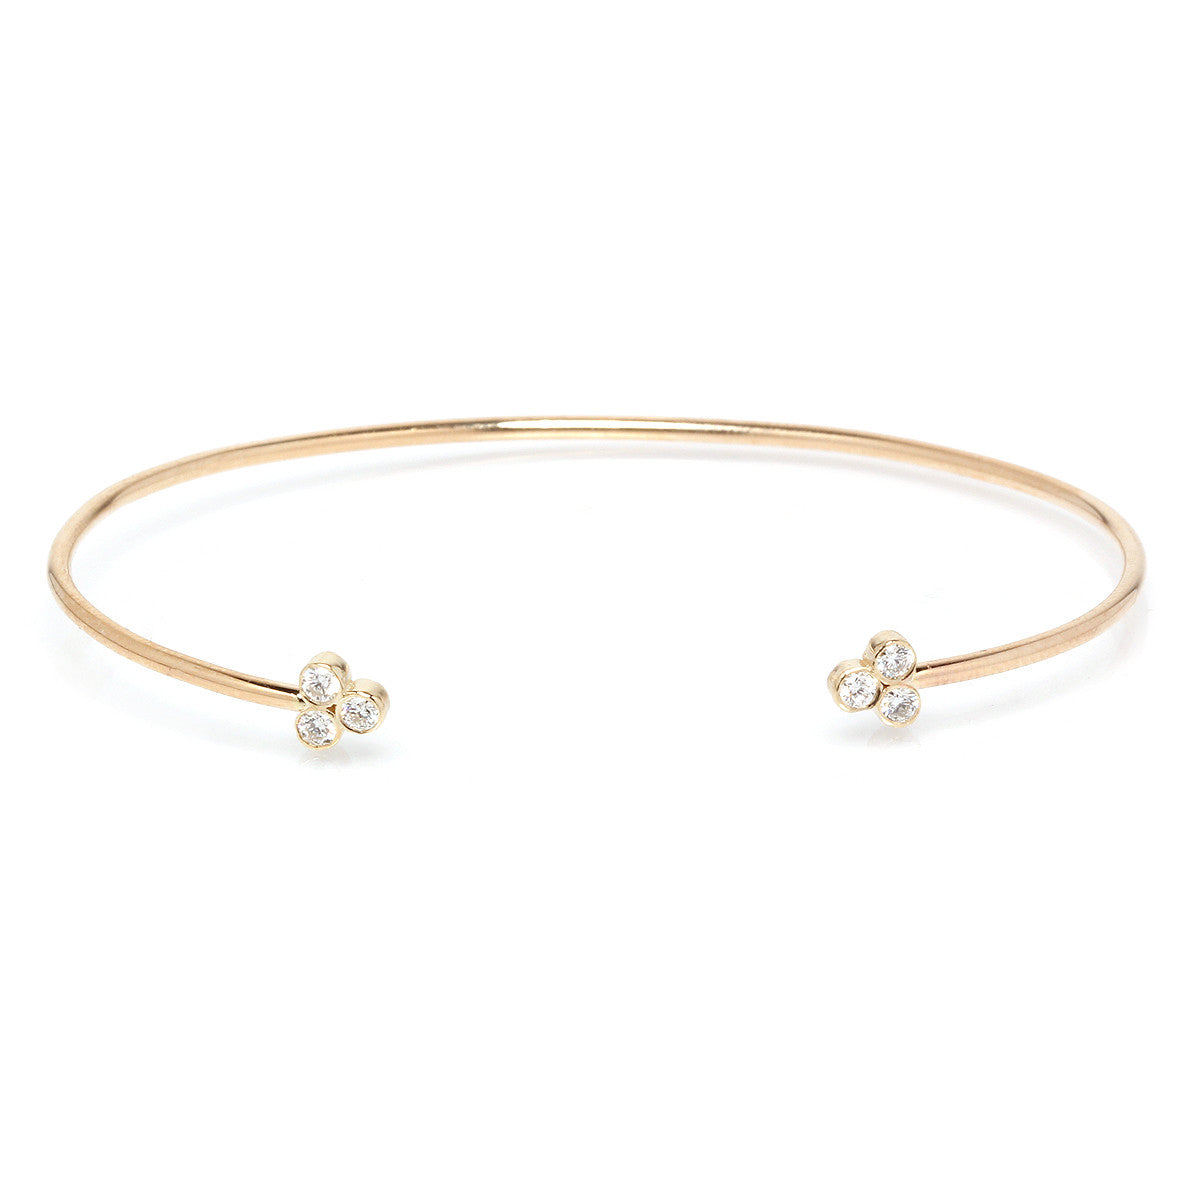 Zoë Chicco 14kt Yellow Gold White Diamond Trio Cuff Bracelet